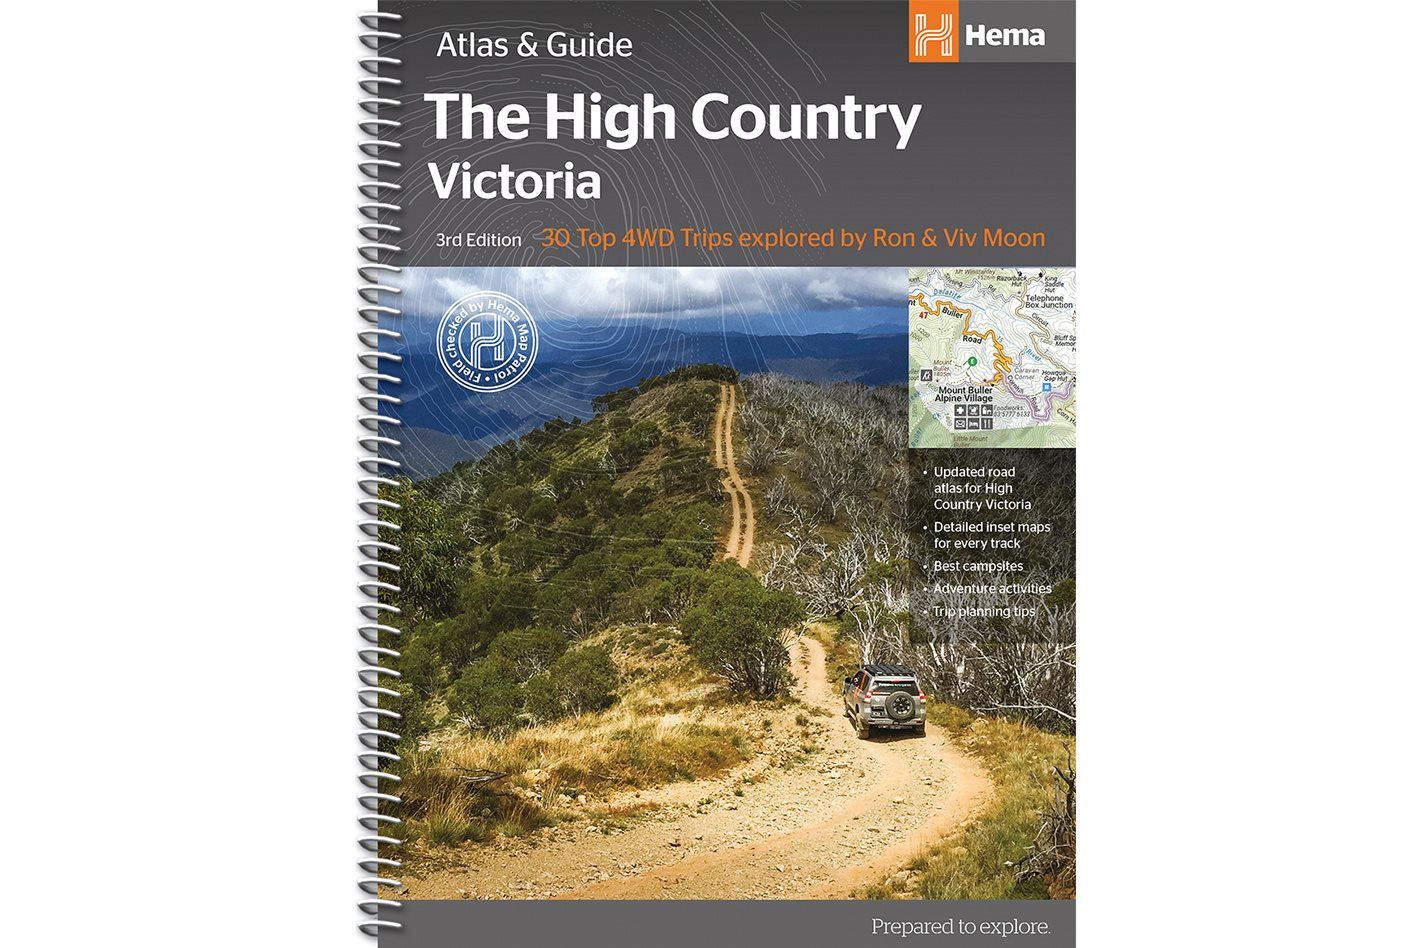 HEMA MAPS' THE HIGH COUNTRY VICTORIA ATLAS & GUIDE